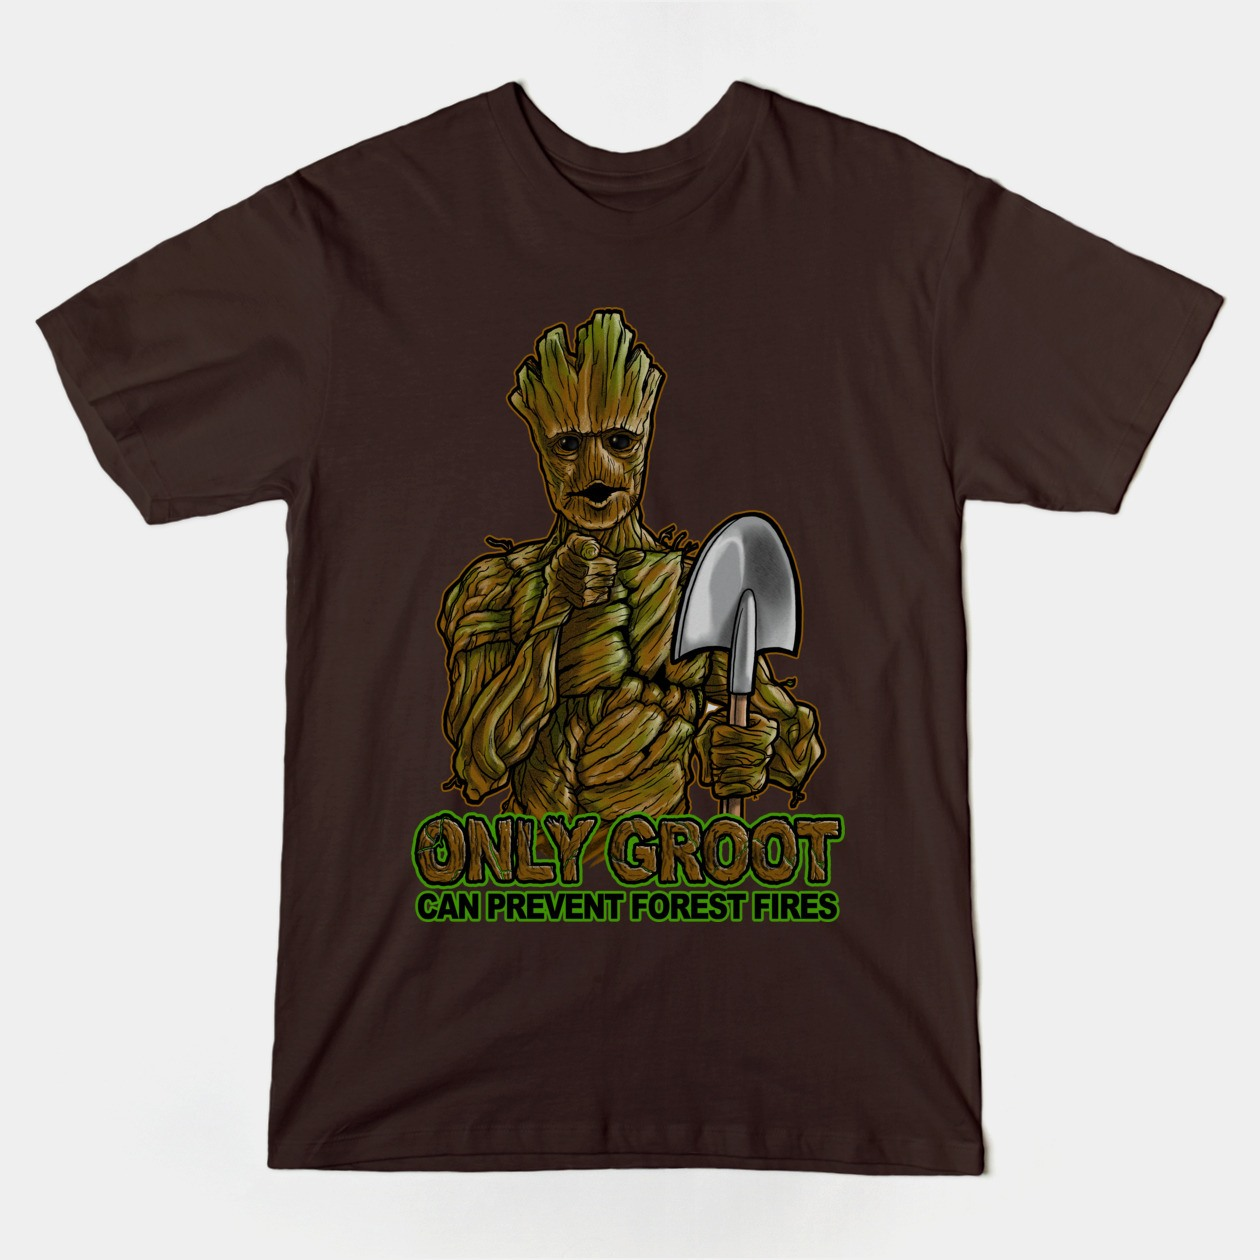 only groot t shirt the shirt list. Black Bedroom Furniture Sets. Home Design Ideas